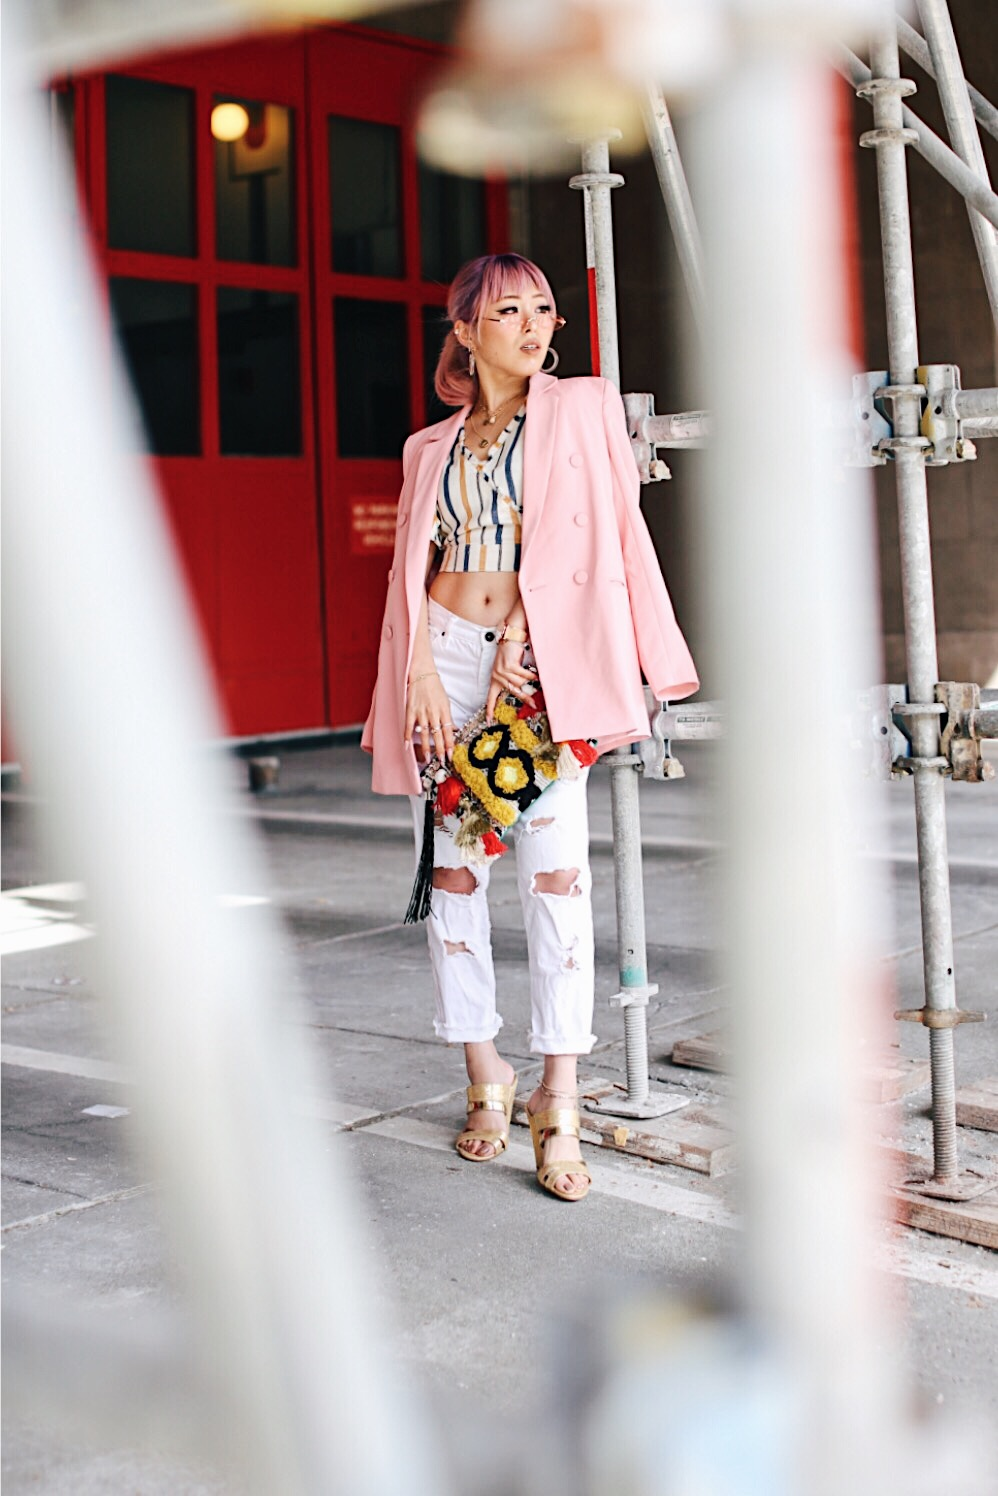 River Island Pink double breasted style blazer-River Island Yellow stripe denim wrap frayed trim crop top-Zara White distressed boyfriend jeans-River Island Black embellished jacquard pouch clutch bag-Clear plastic glitter hoop earrings-Gold open toe cone heel mule-ZeroUV Retro Triangle Cat Eye Sunglasses-Aikas Love Closet-Seattle Fashion Blogger-Japanese-Pink Hair-petite fashion-street snap 17